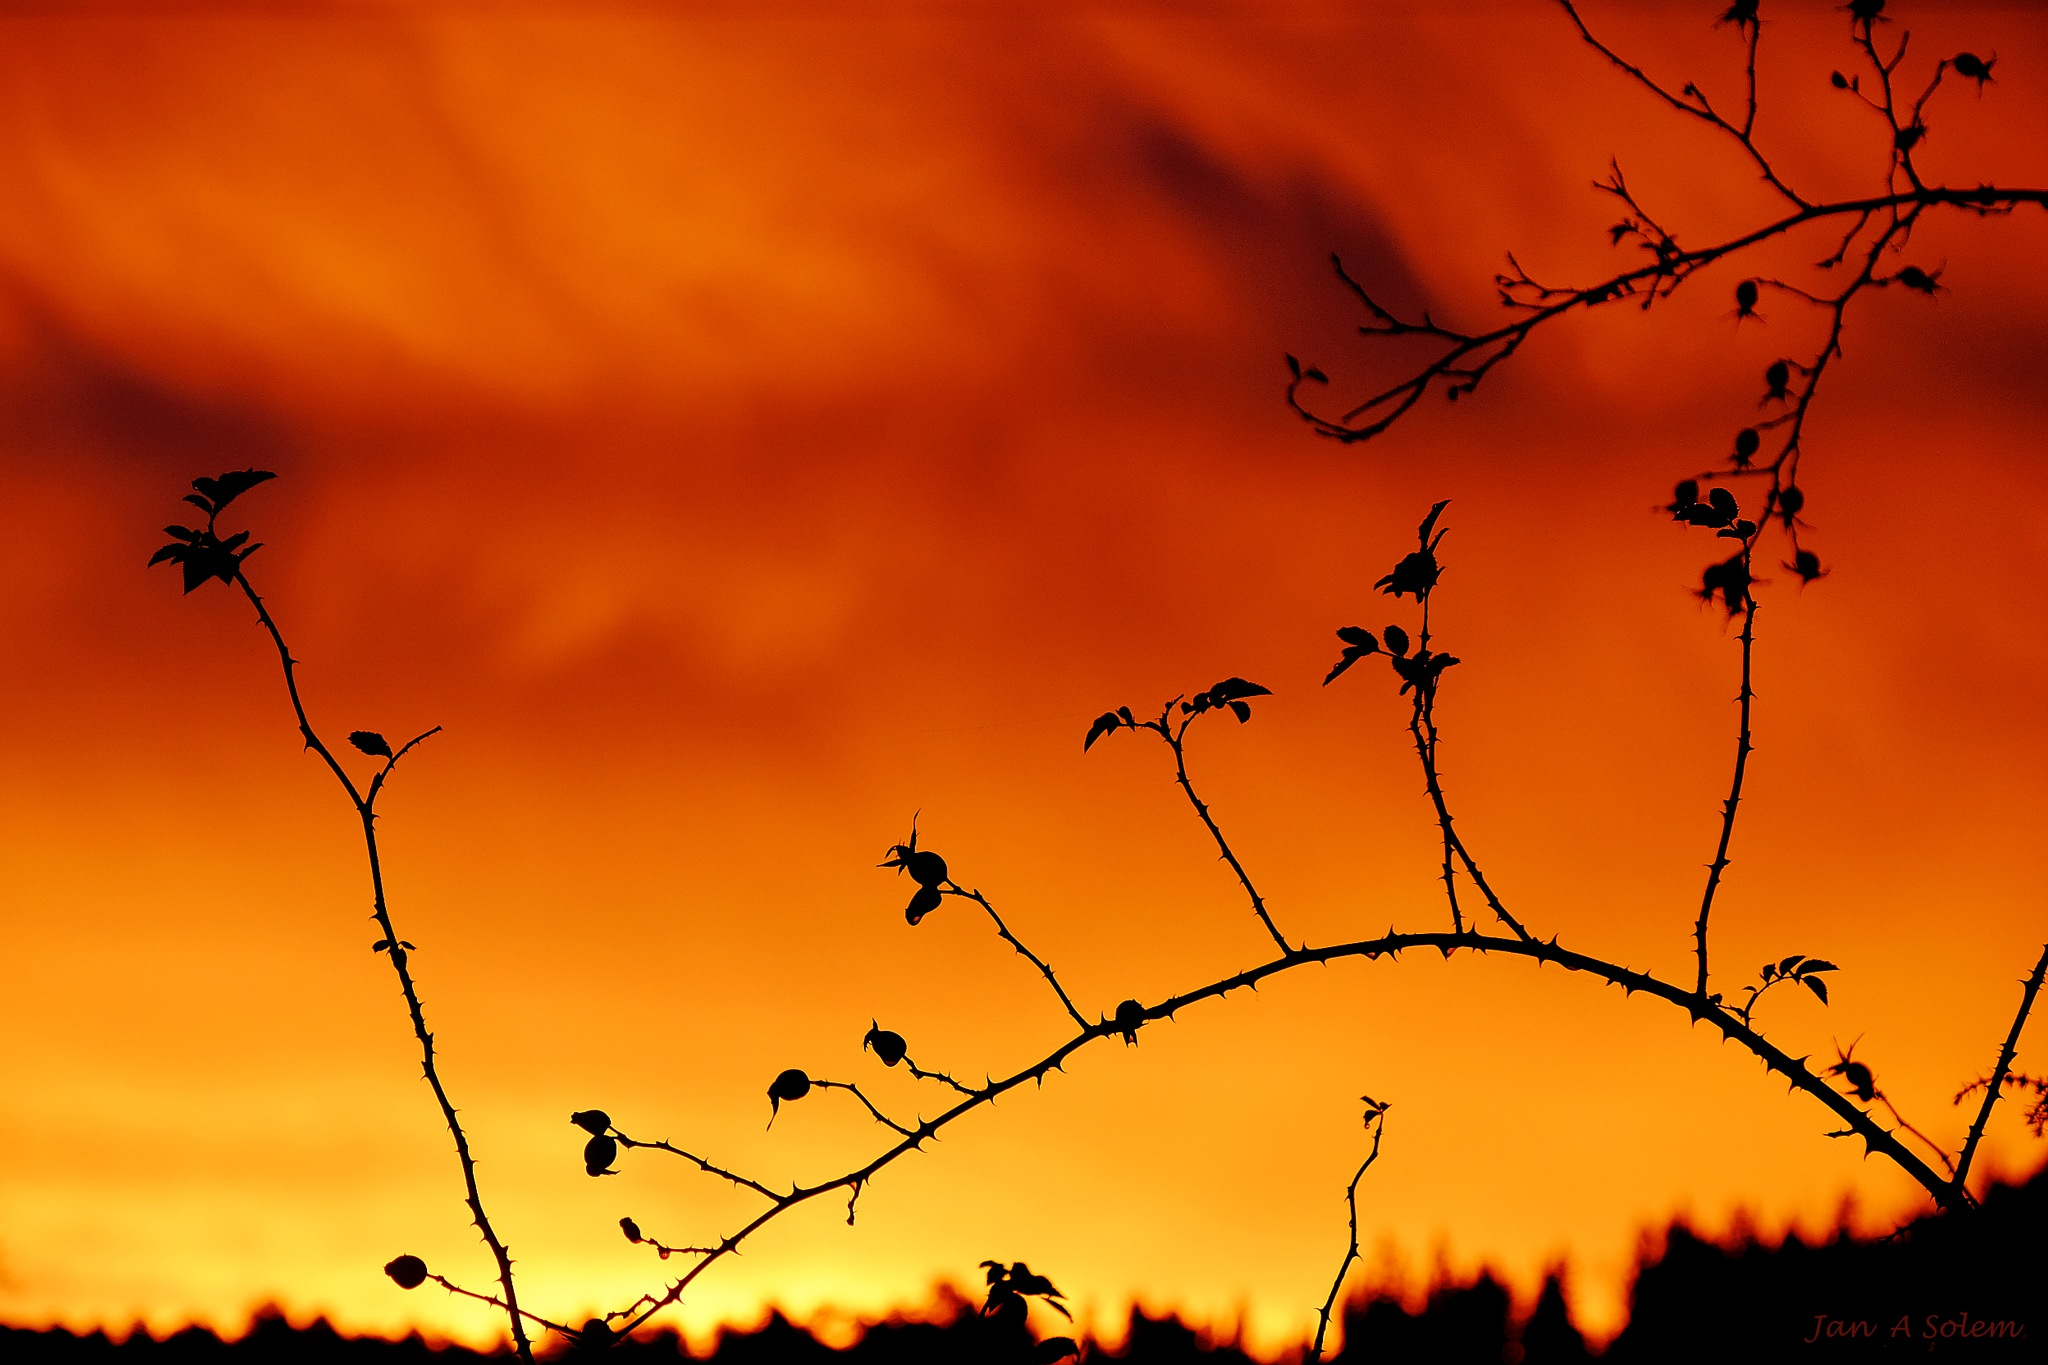 Thorns and Sunrise by Jan Arvid Solem